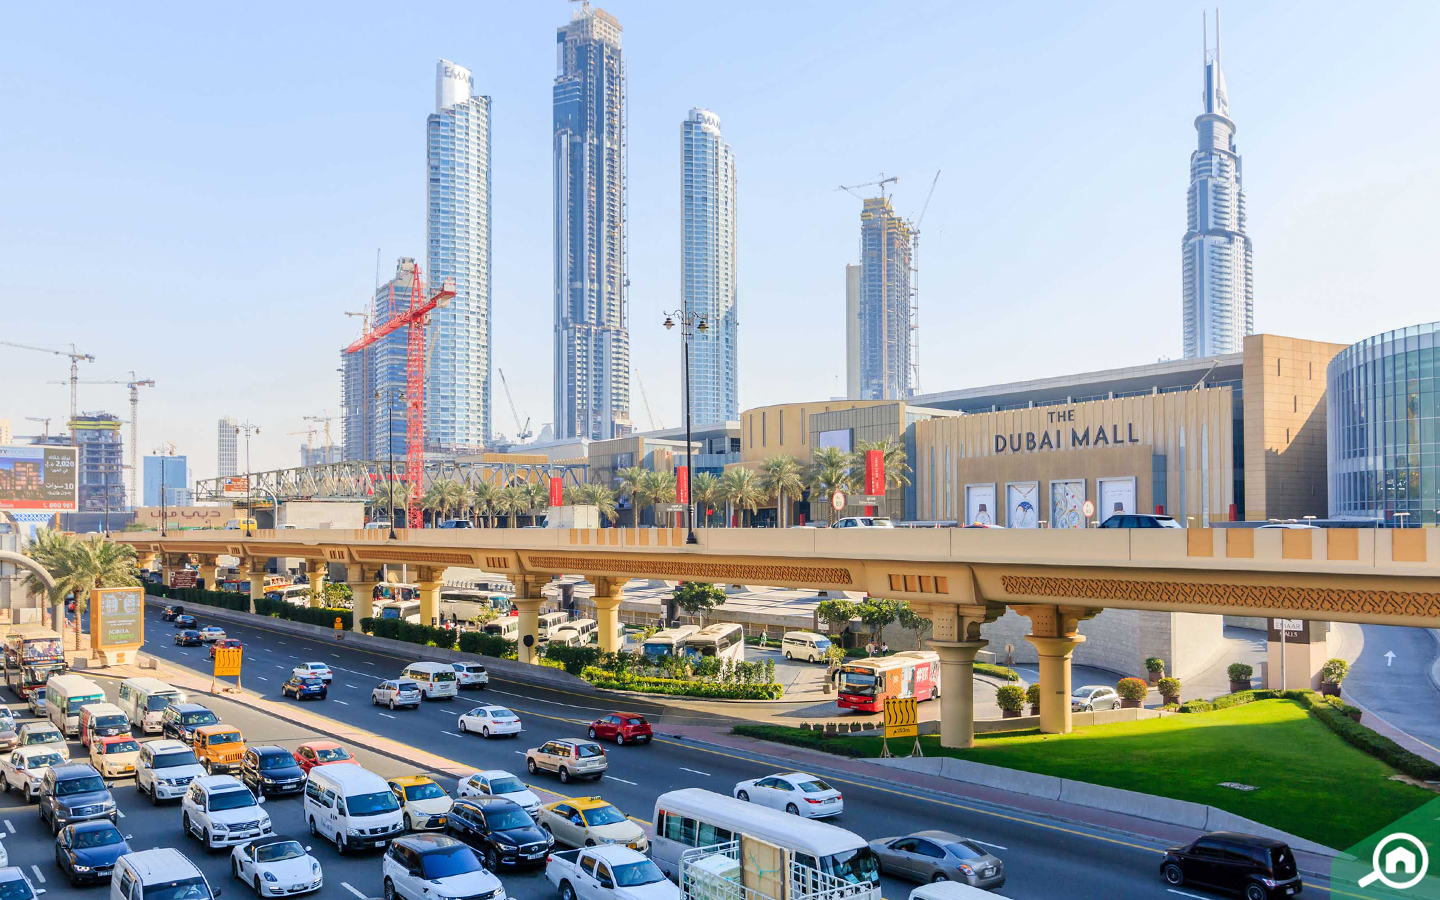 The city consists of many malls such as Ibn Battuta Mall and Mall of the Emirates